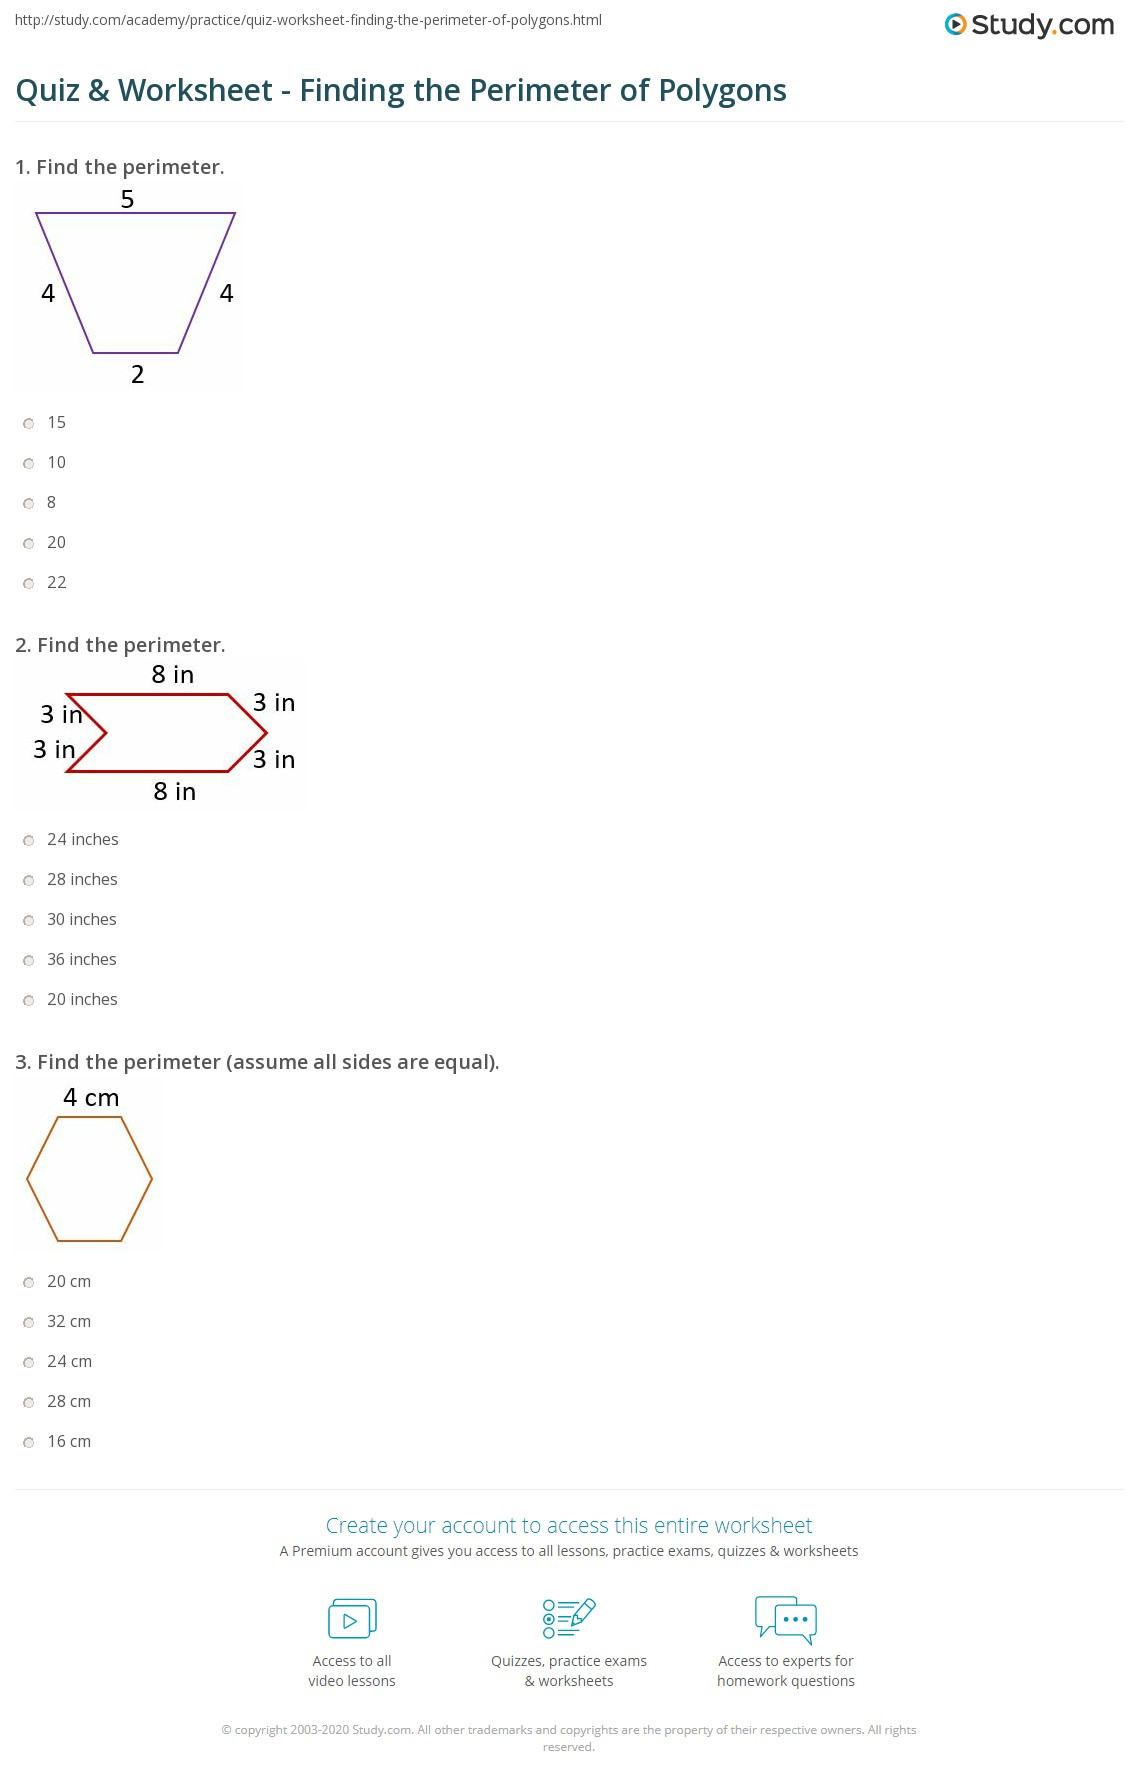 Quiz Worksheet Finding The Perimeter Of Polygons